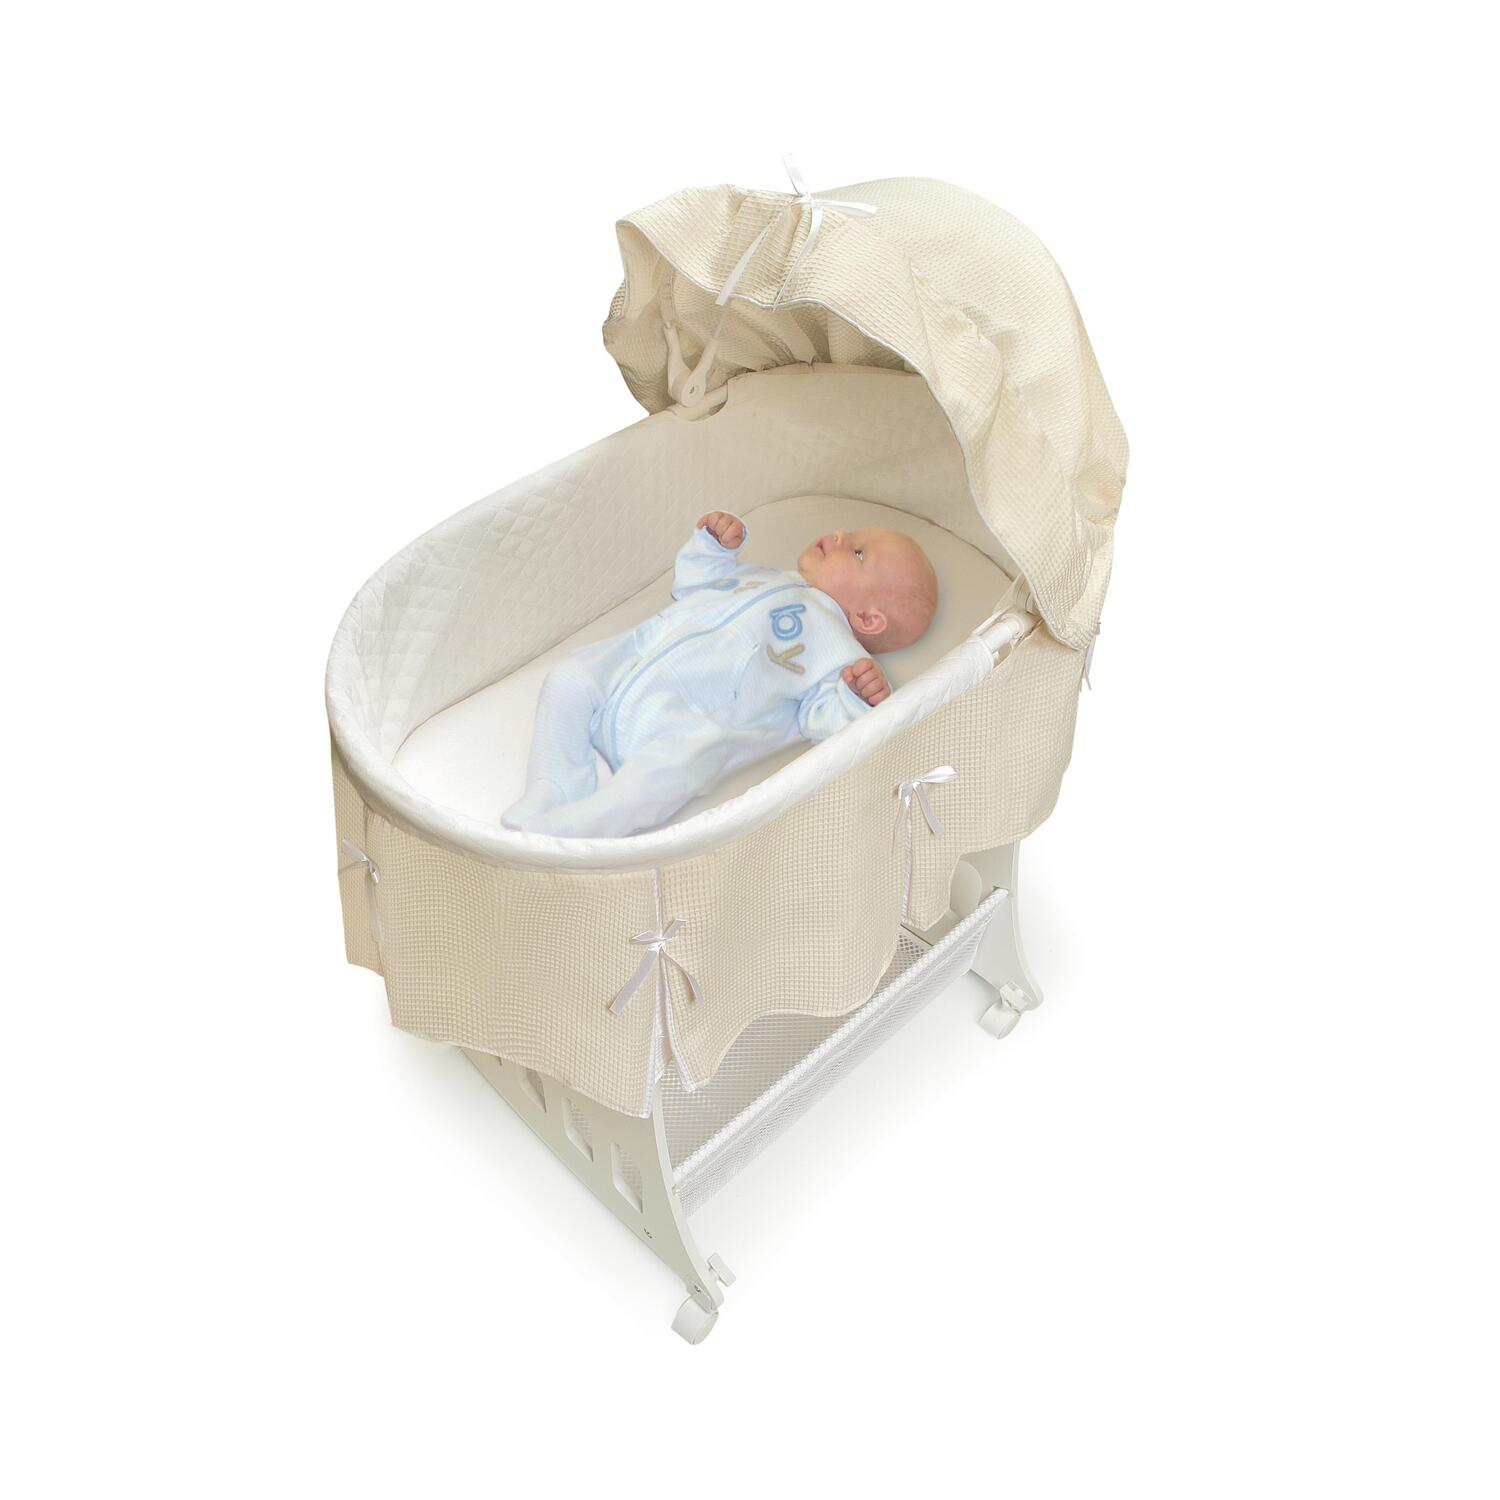 Badger basket portable bassinet 39 n cradle with toybox base for Portable bassinet